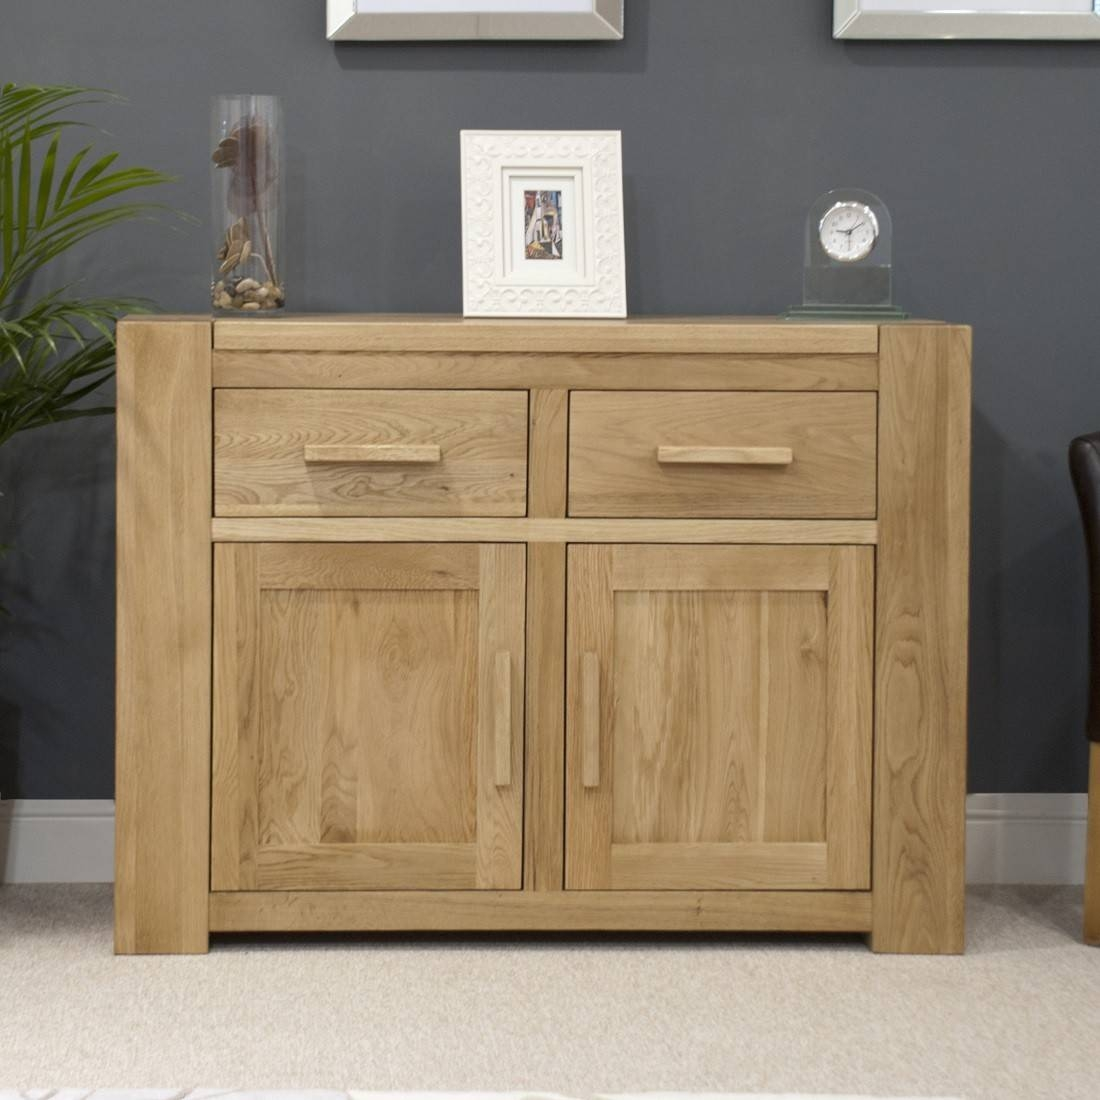 Trend Solid Oak Small 2 Door Sideboard | Oak Furniture Uk Intended For Best And Newest 2 Door Sideboards (#13 of 15)